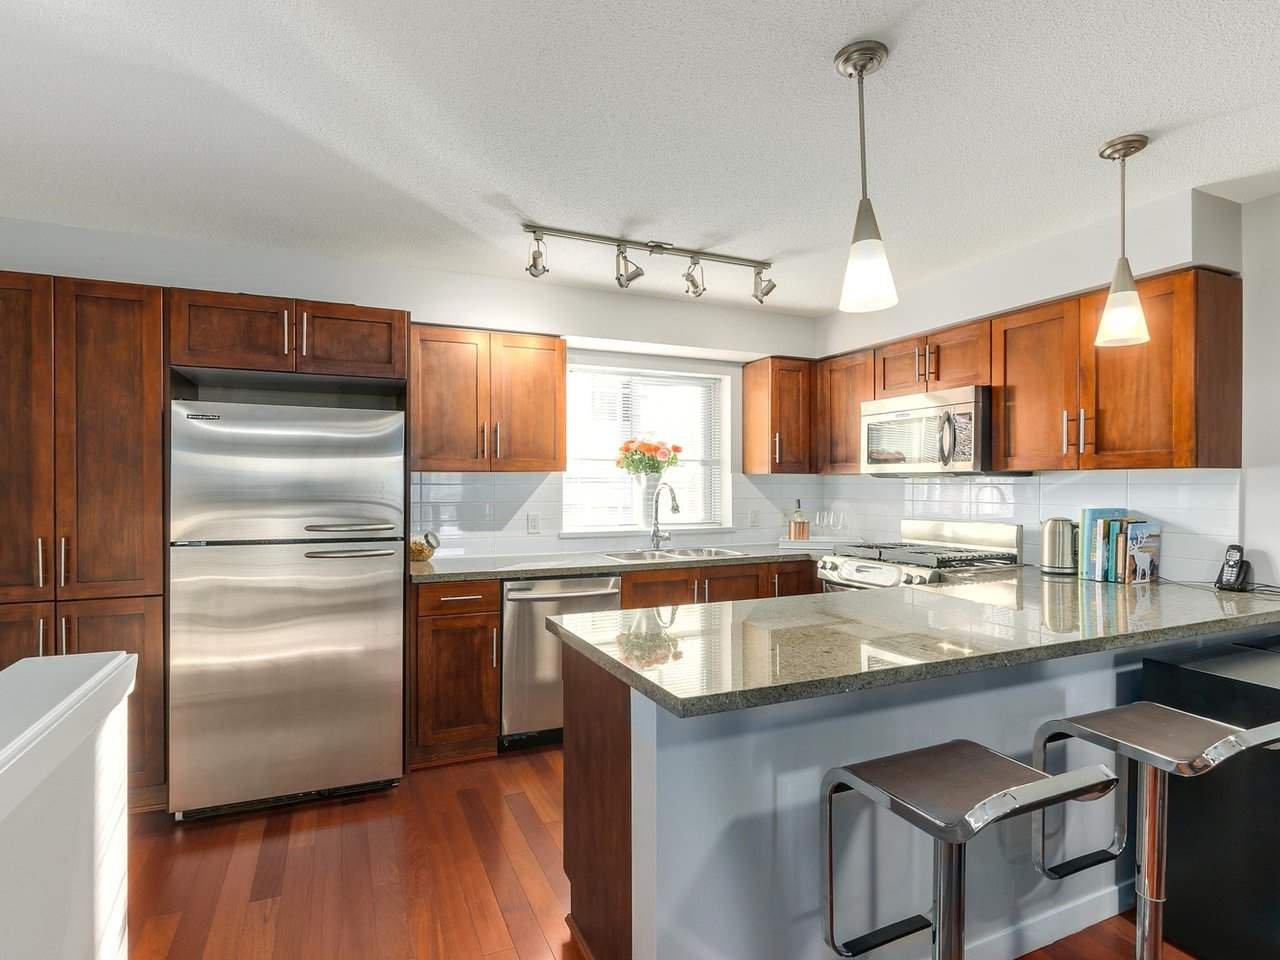 Photo 8: Photos: 119 672 W 6TH AVENUE in Vancouver: Fairview VW Townhouse for sale (Vancouver West)  : MLS®# R2401186